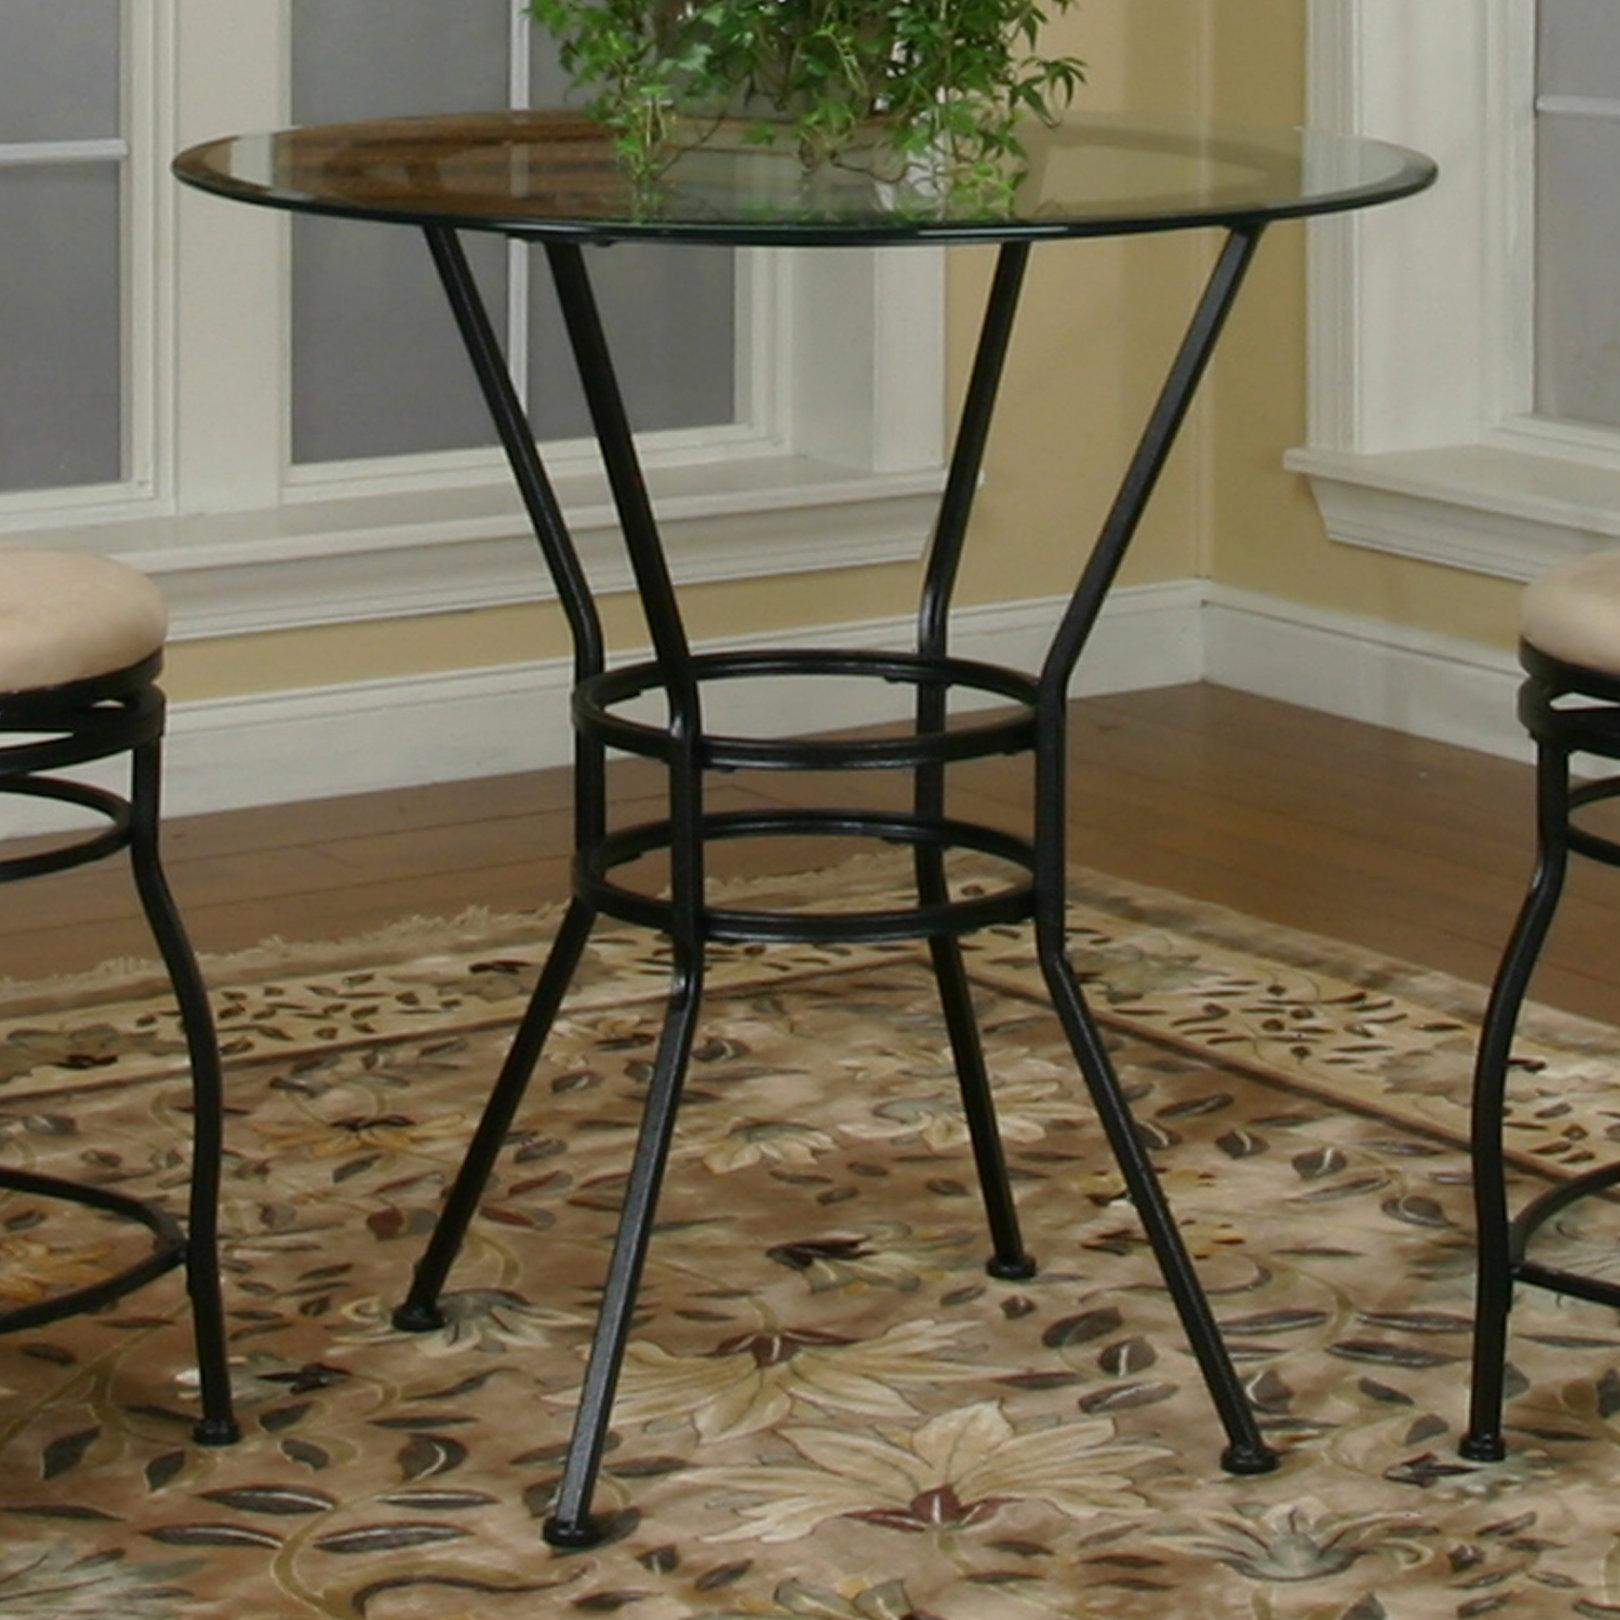 Amazing Round Glass Pub Table W/ Textured Black Pedestal Base